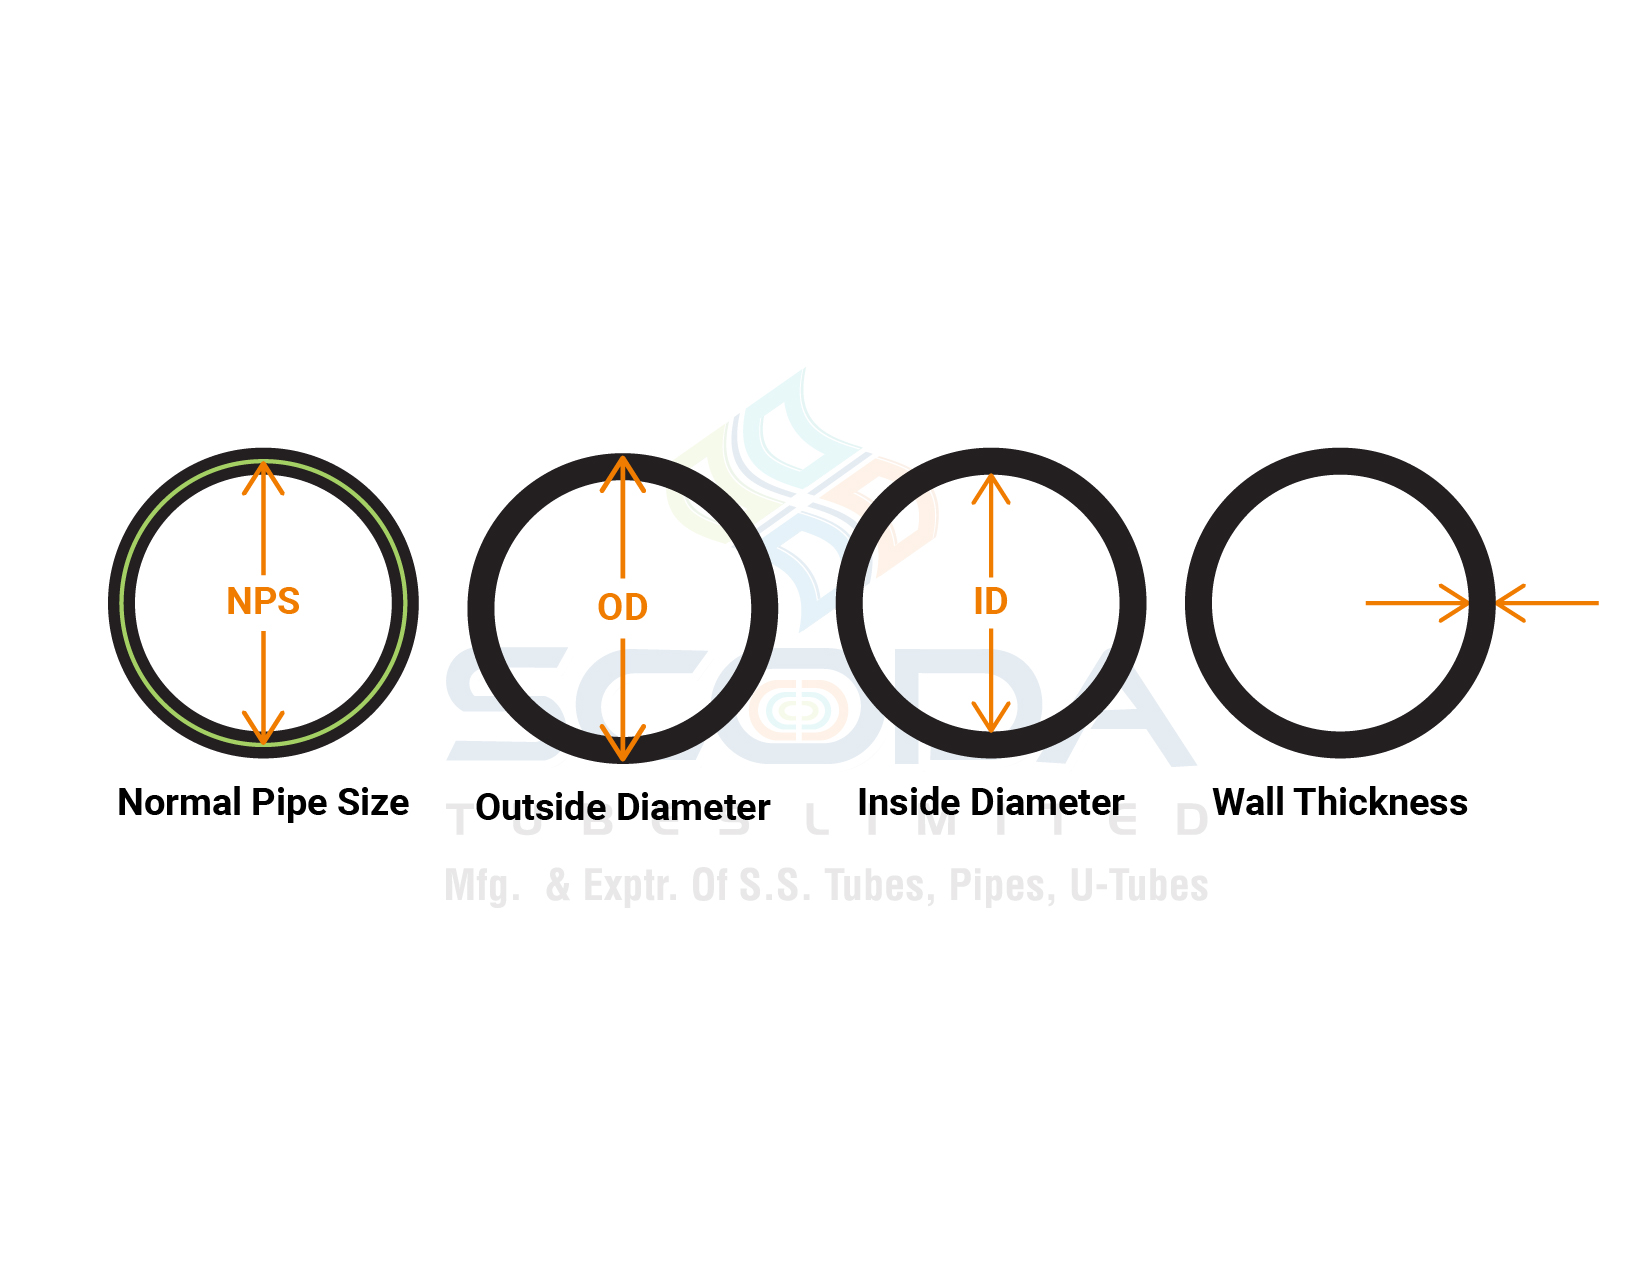 Differences between Stainless Steel Pipes and Tubes